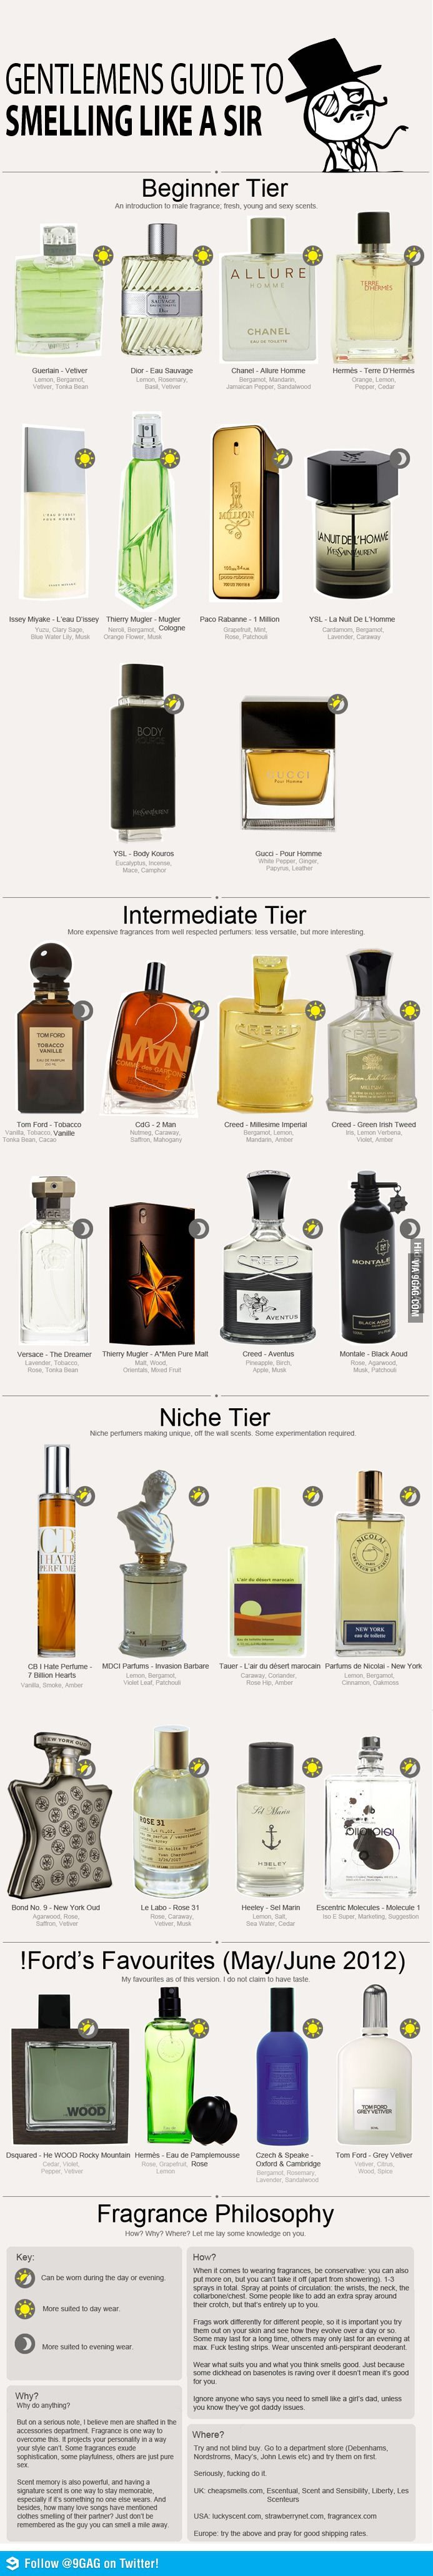 colognes mens guide